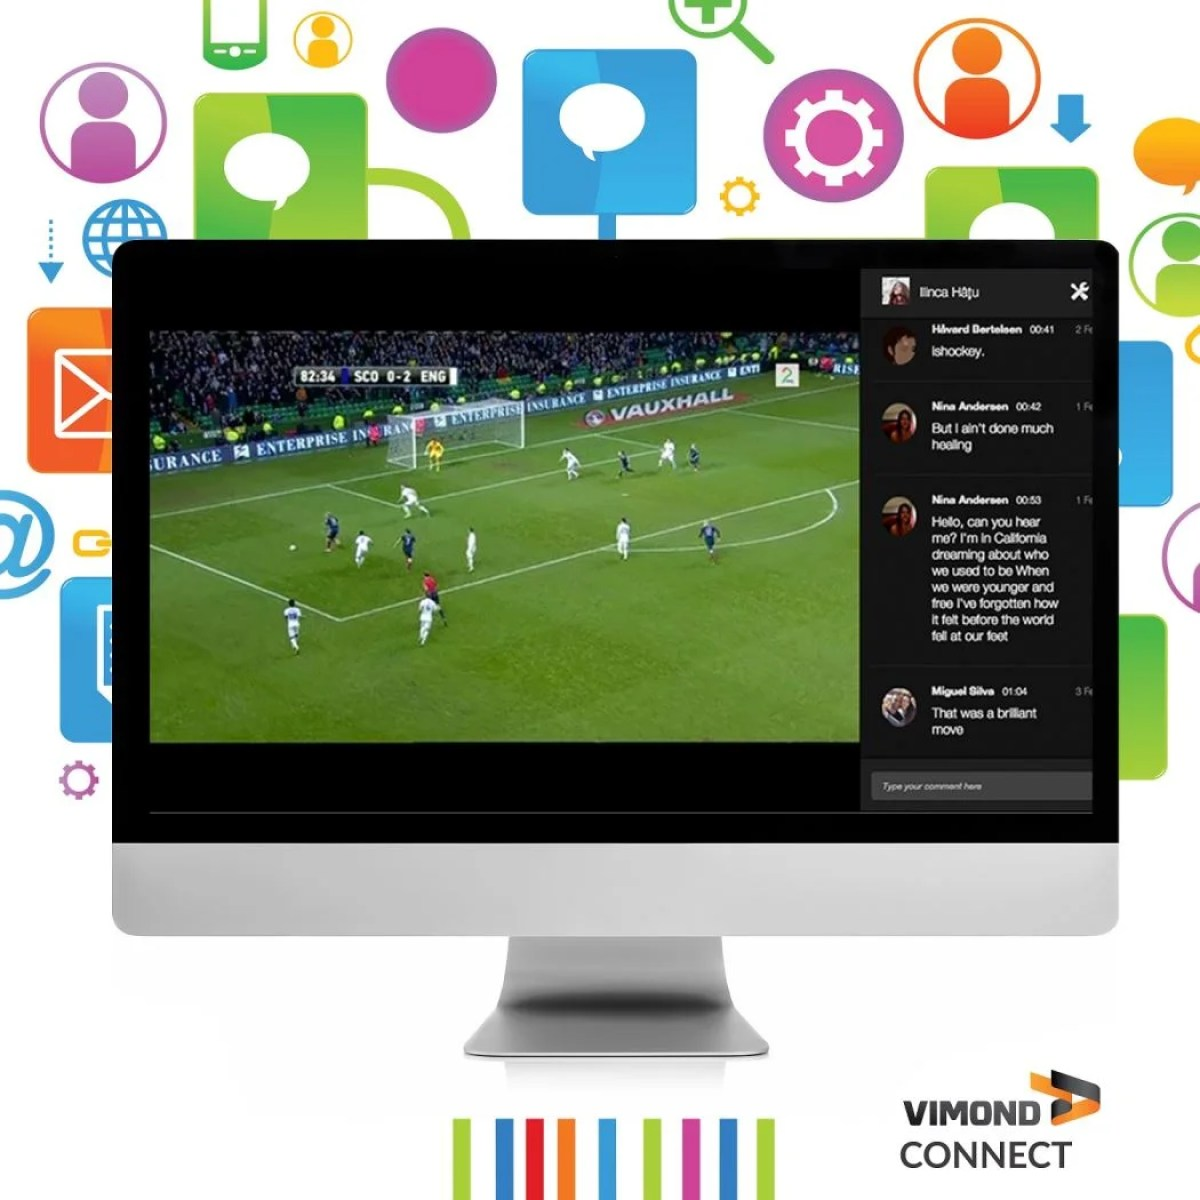 Vimond Connect official with creative background